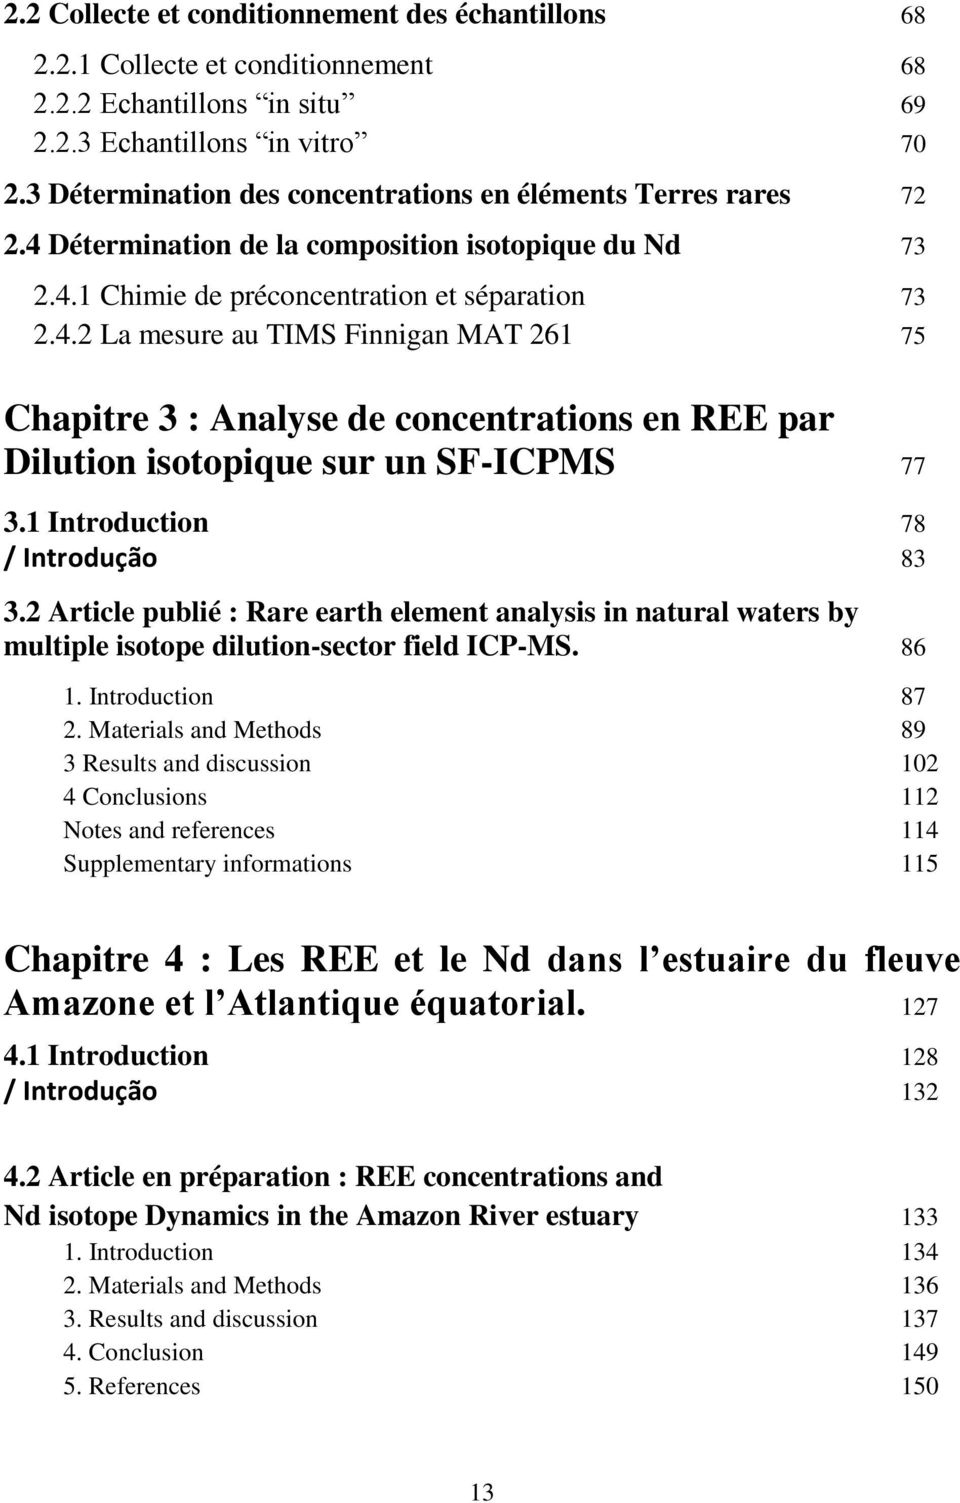 1 Introduction 78 / Introdução 83 3.2 Article publié : Rare earth element analysis in natural waters by multiple isotope dilution-sector field ICP-MS. 86 1. Introduction 87 2.